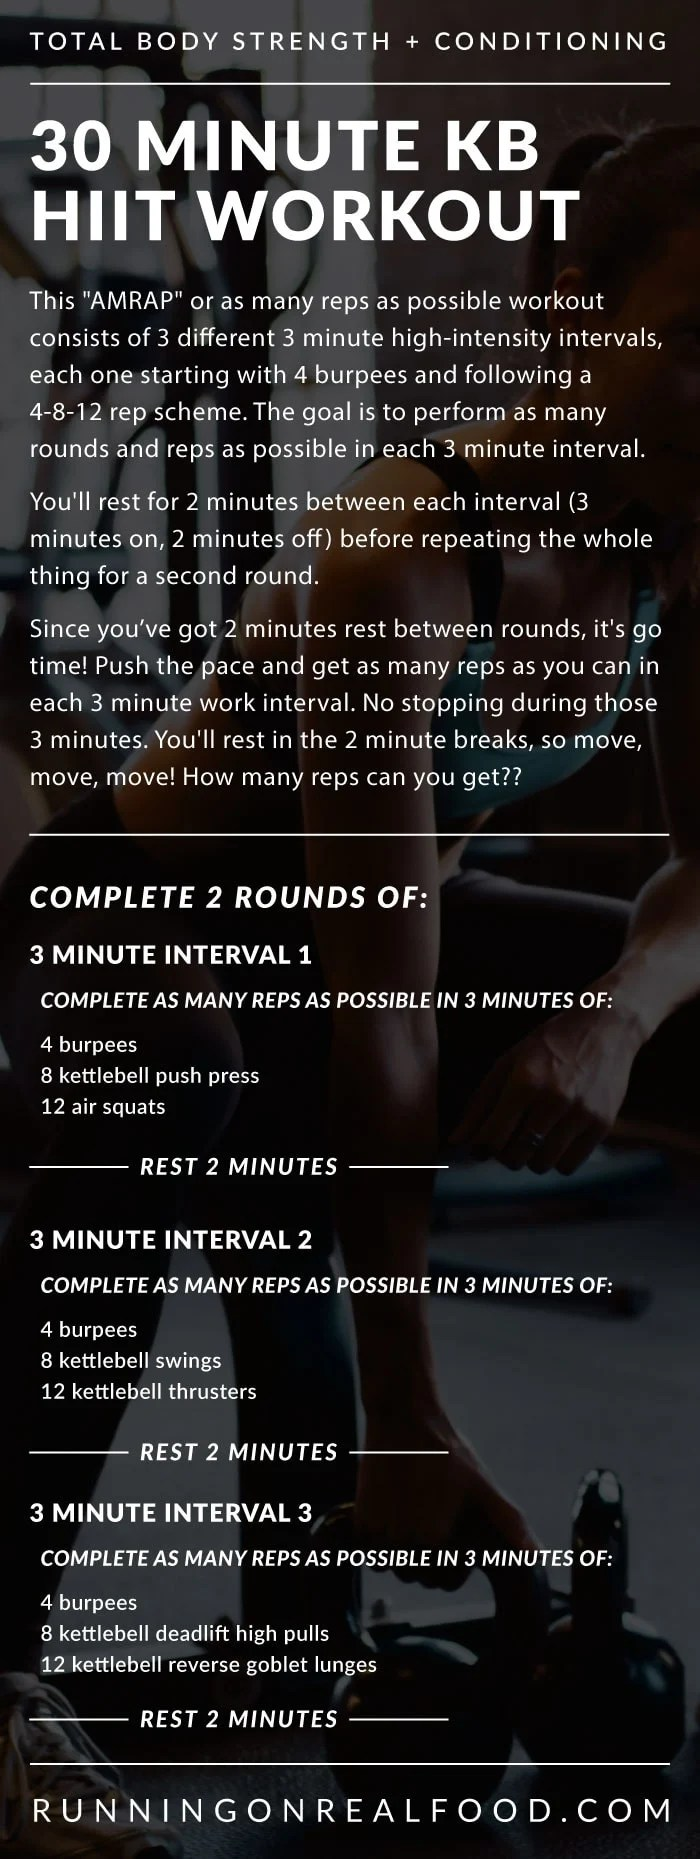 30 Minute Kettlebell HIIT Workout for the Gym - Running on Real Food